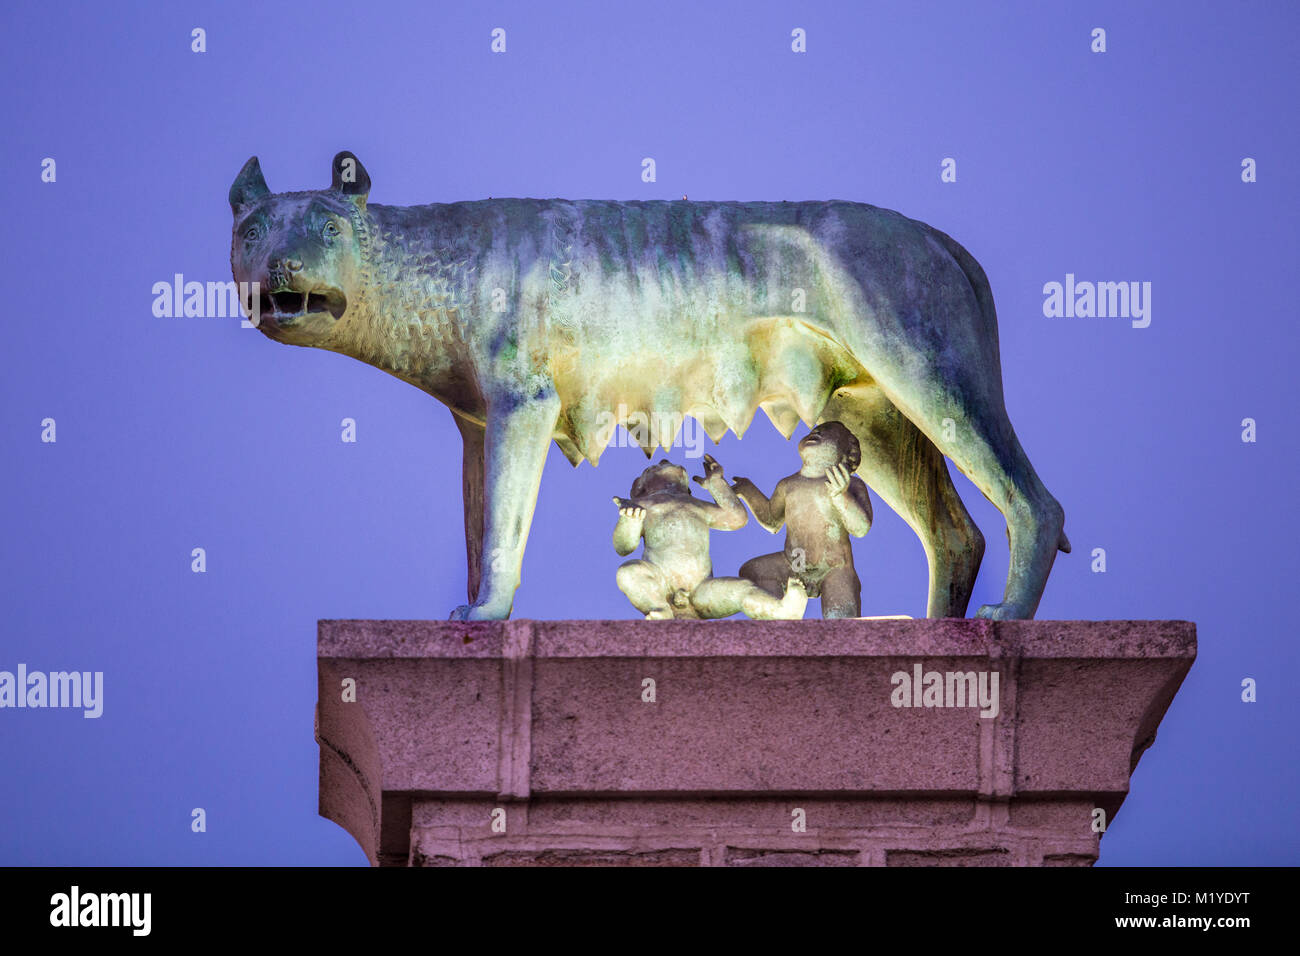 Bronze sculpture of the she-wolf with Romulus and Remus, Replica at Merida city, Spain - Stock Image